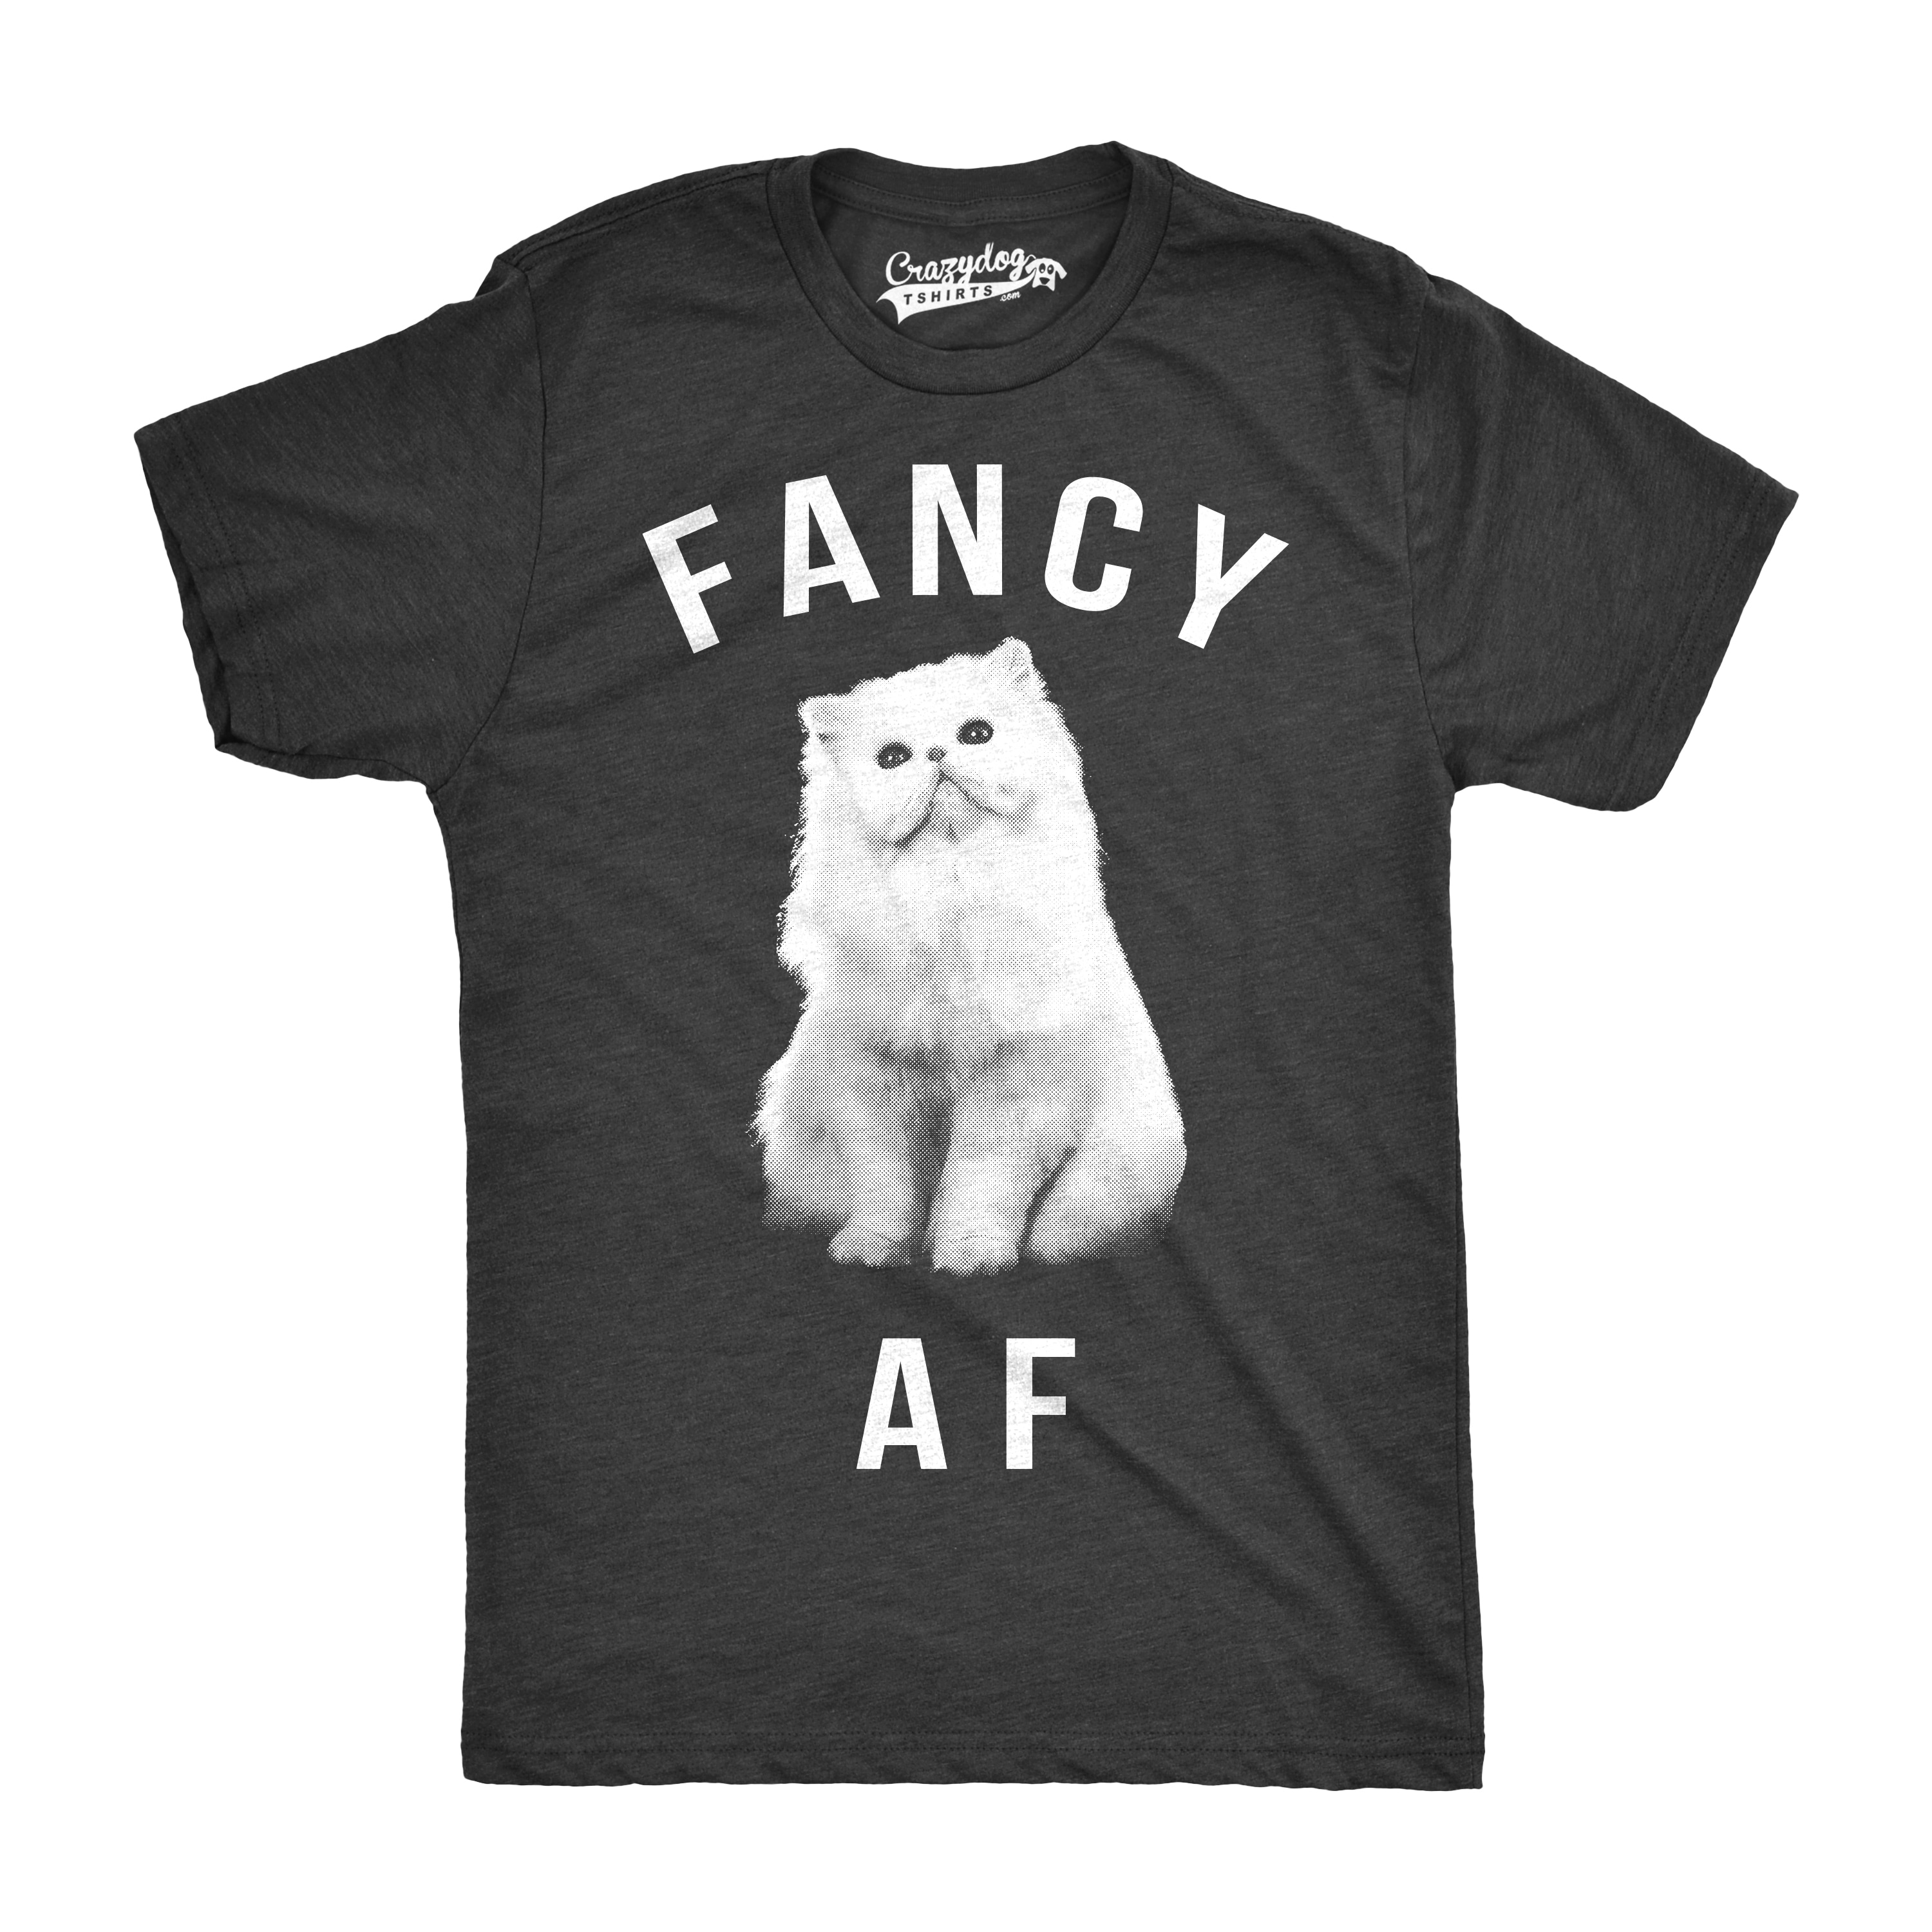 538a6423 Shop Mens Fancy AF Funny T shirts Novelty Tees Hilarious Cat Face Animal T  shirts - Free Shipping On Orders Over $45 - Overstock - 18534404